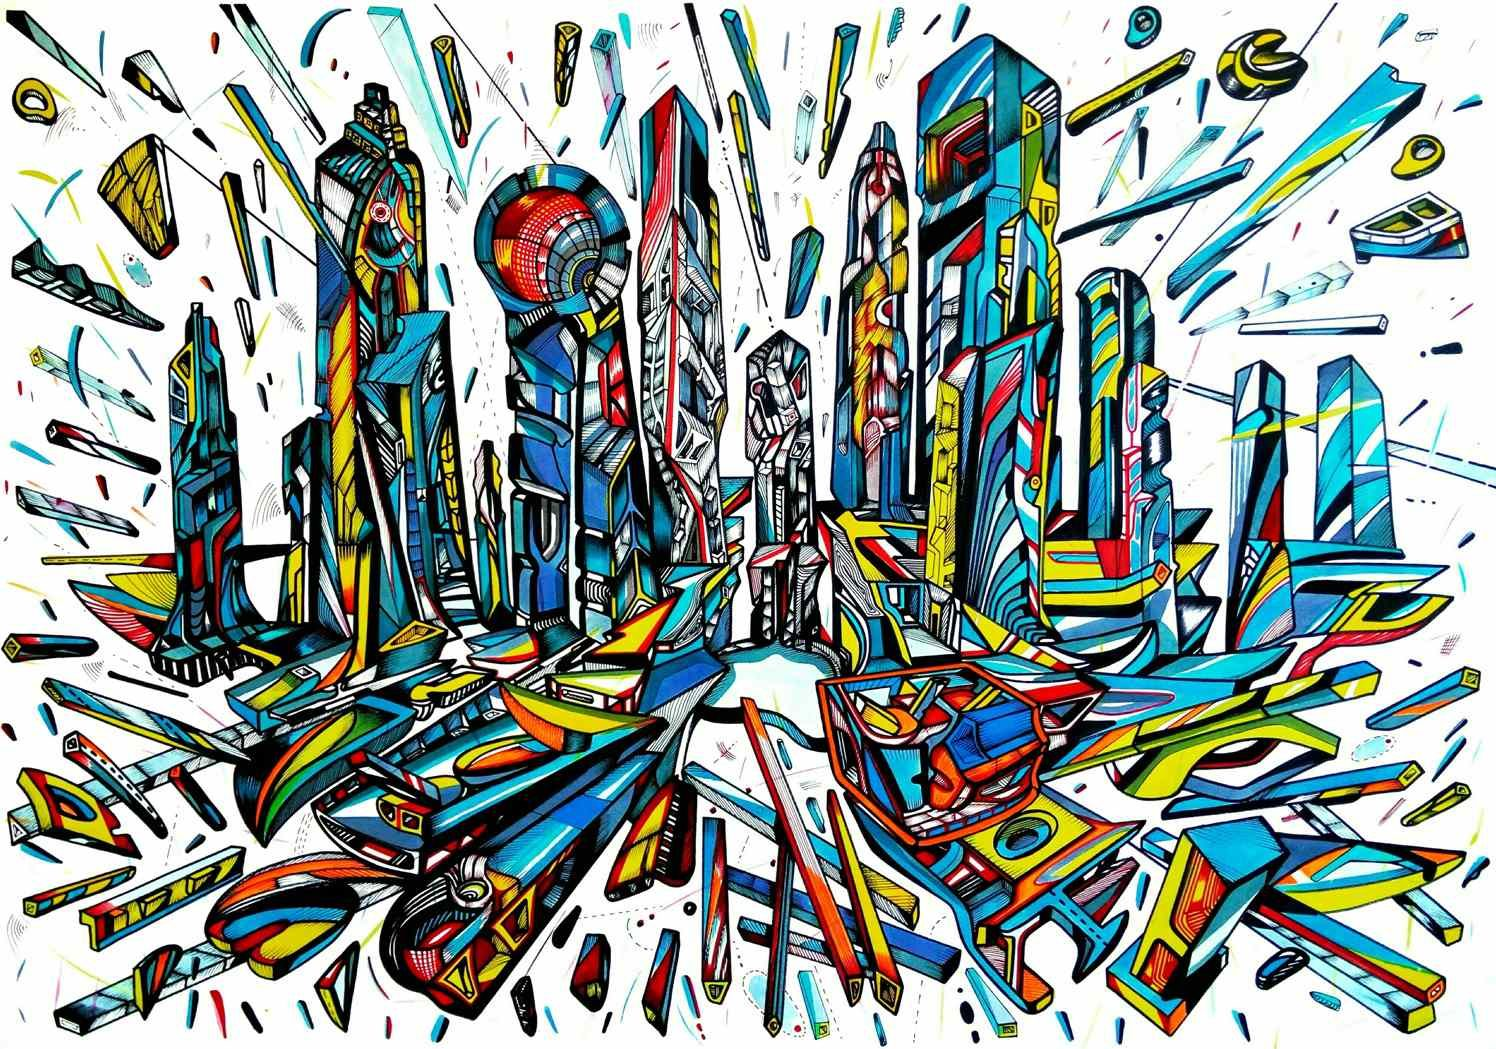 Blue city is on the move, acrylic and ink on paper, artist Marko Gavrilovic